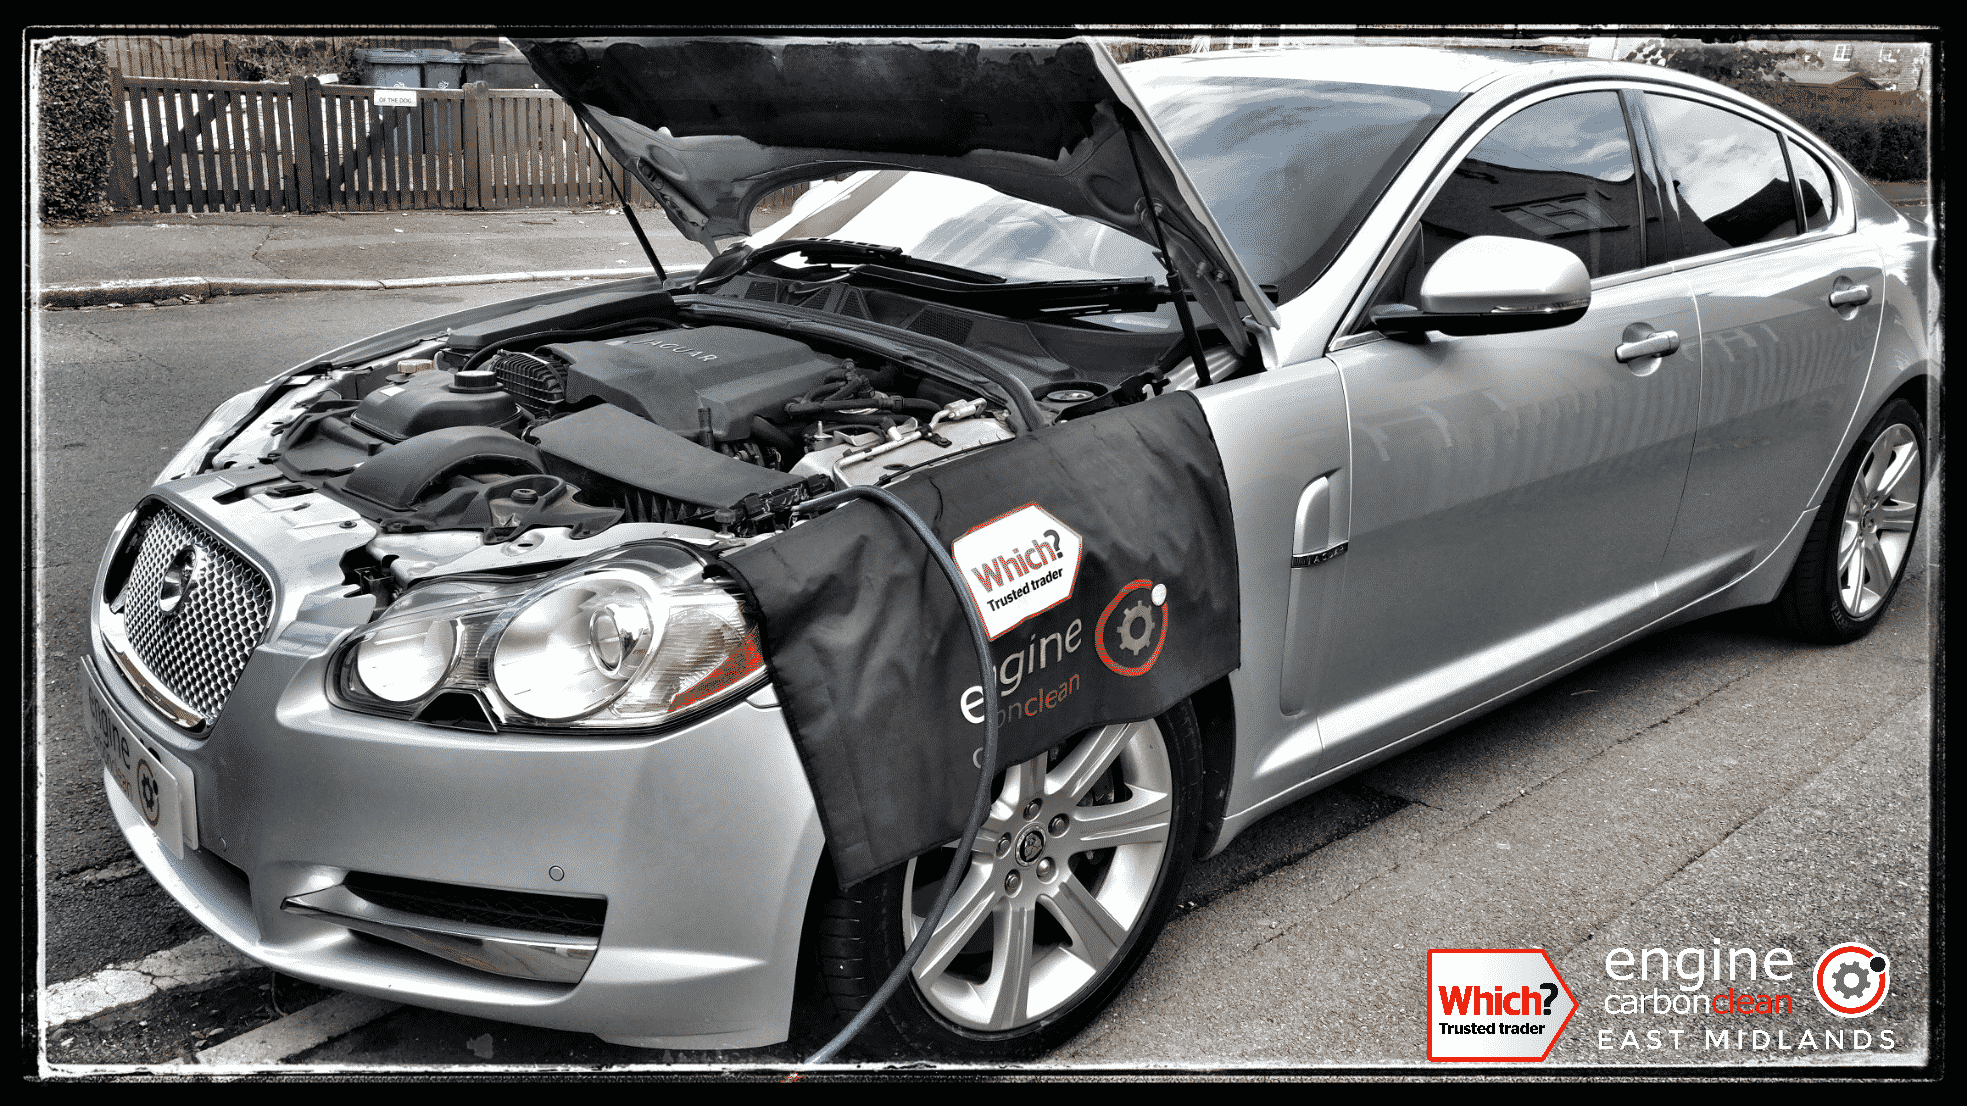 Engine Carbon Clean on a Jaguar XF 3.0 Diesel (2010 - 154,469 miles)